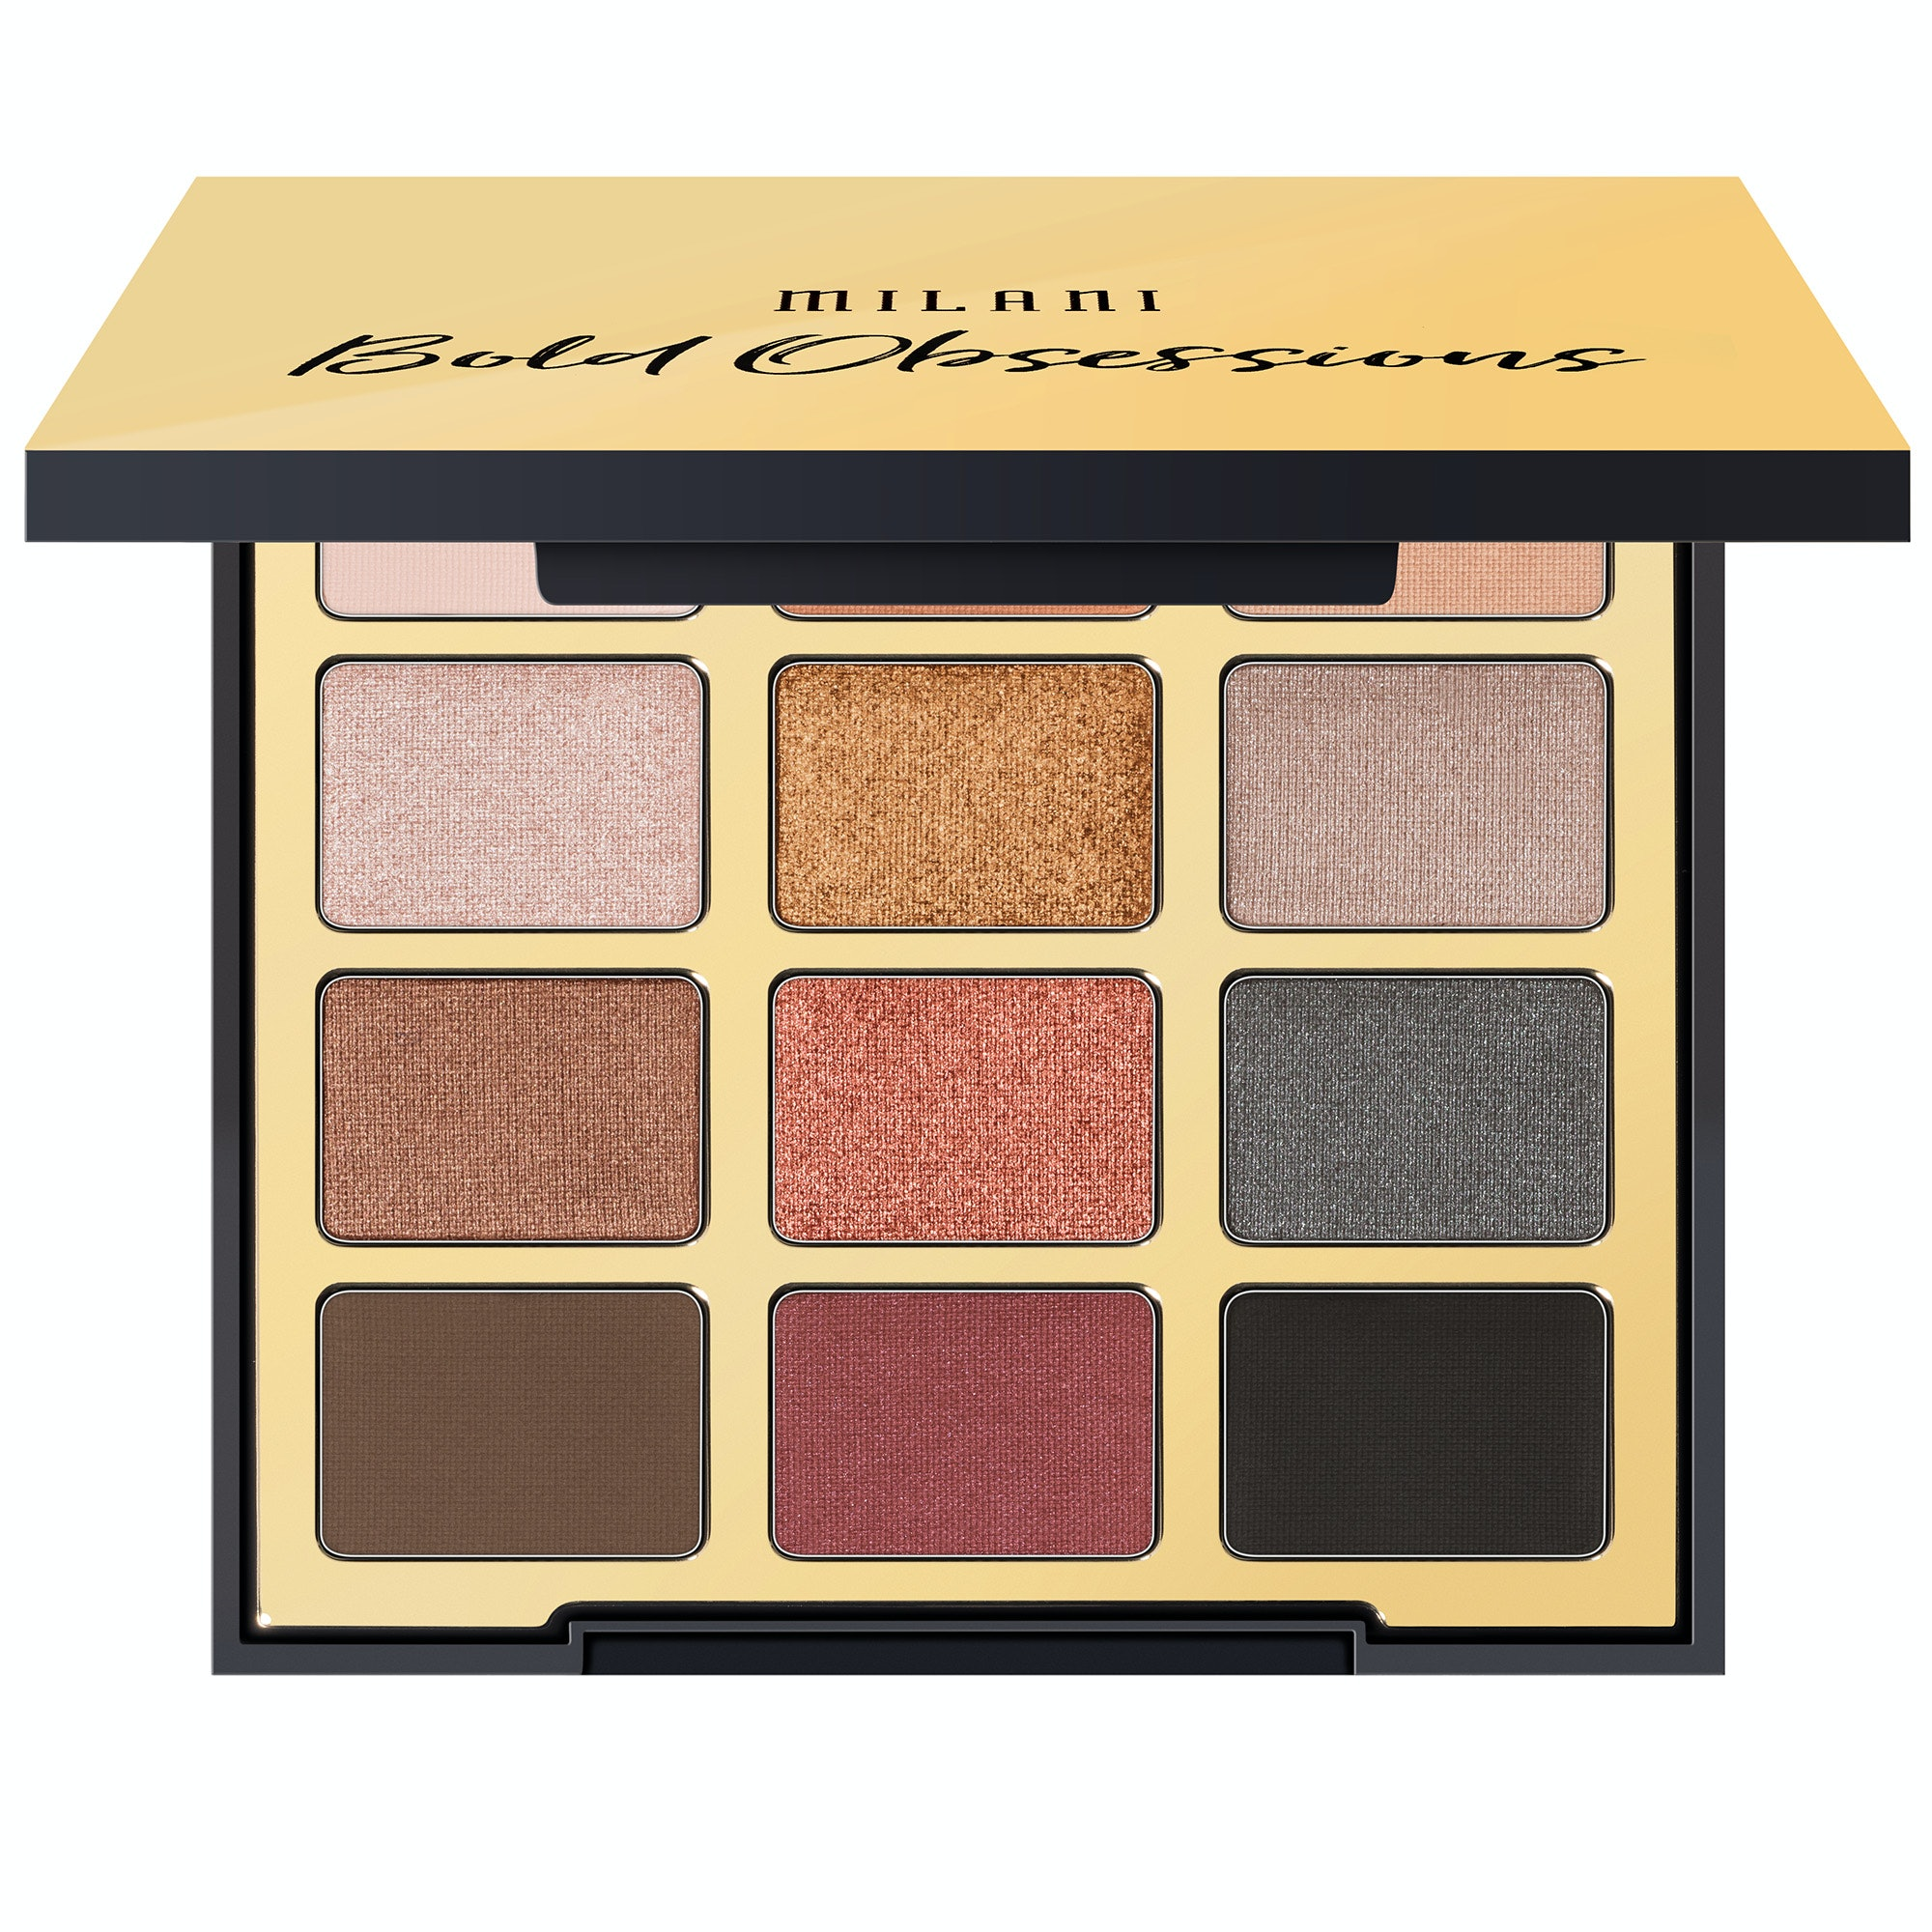 The Best Affordable Eyeshadow Palettes at Walmart for Under $20